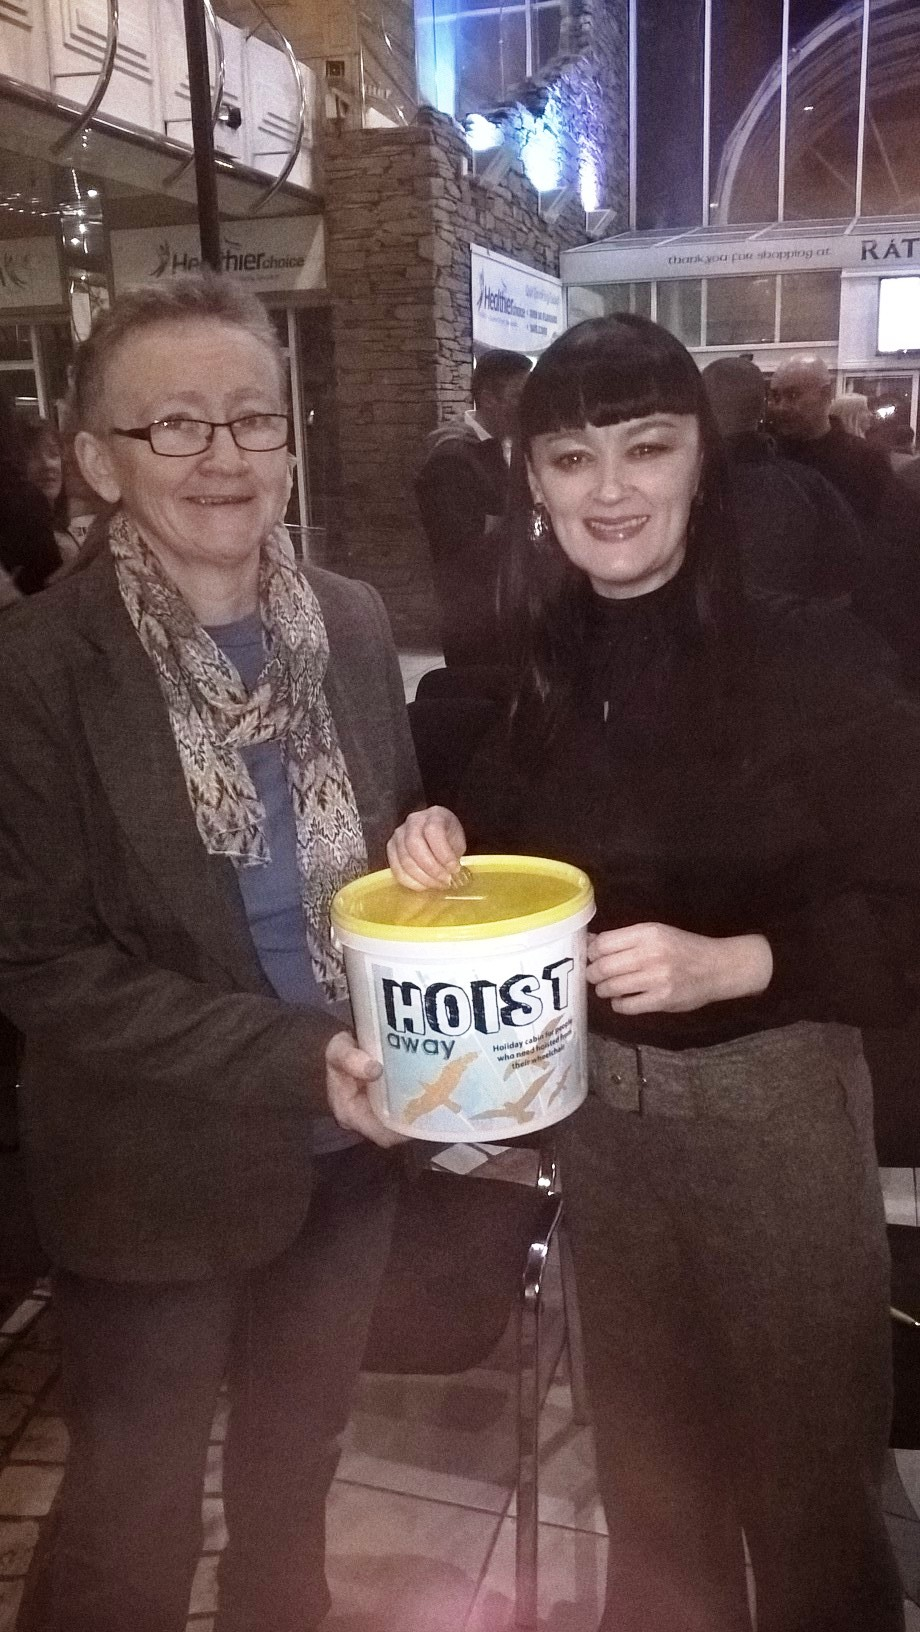 Bronagh Gallagher supporting Hoist Away's Pound Appeal